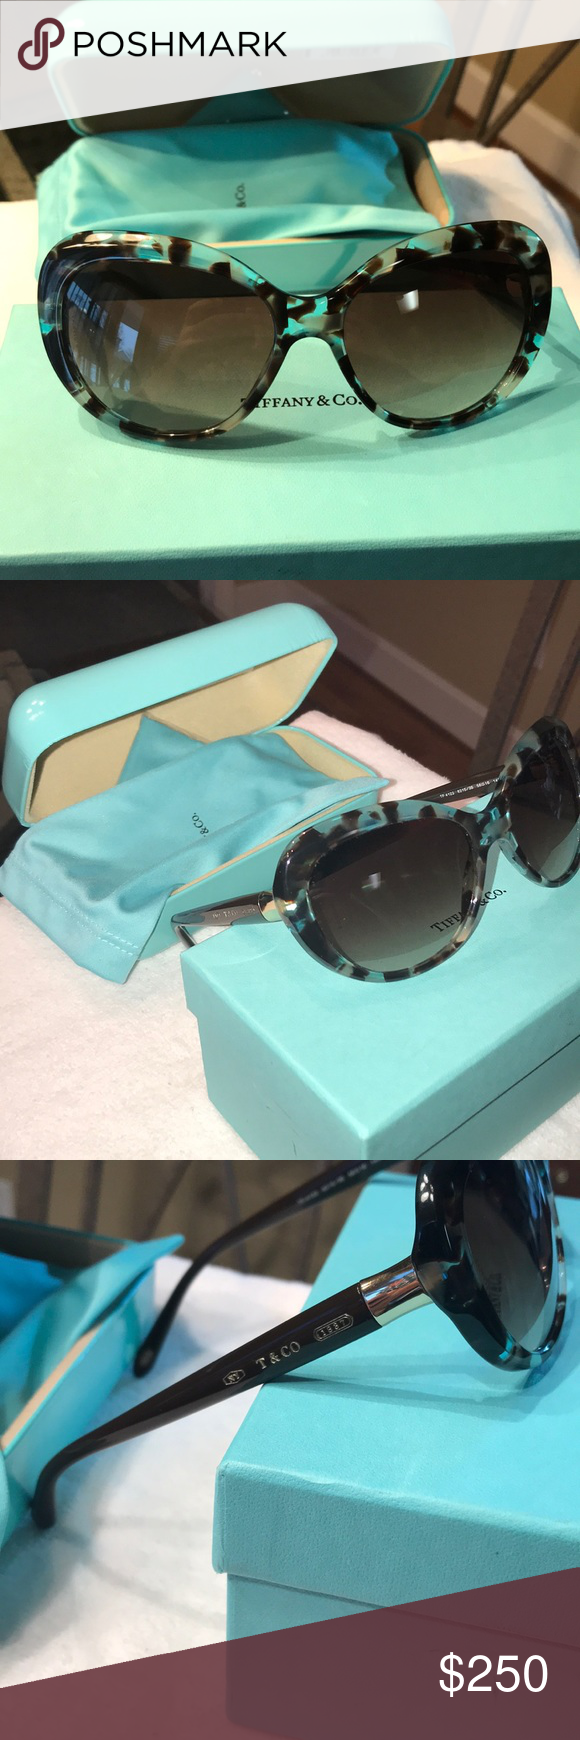 9182d314582 TF4122 Spotted Opal Blue Sunglasses. Tiffany   Co. TF4122 Spotted Opal Blue  Sunglasses New and authentic. Comes with box